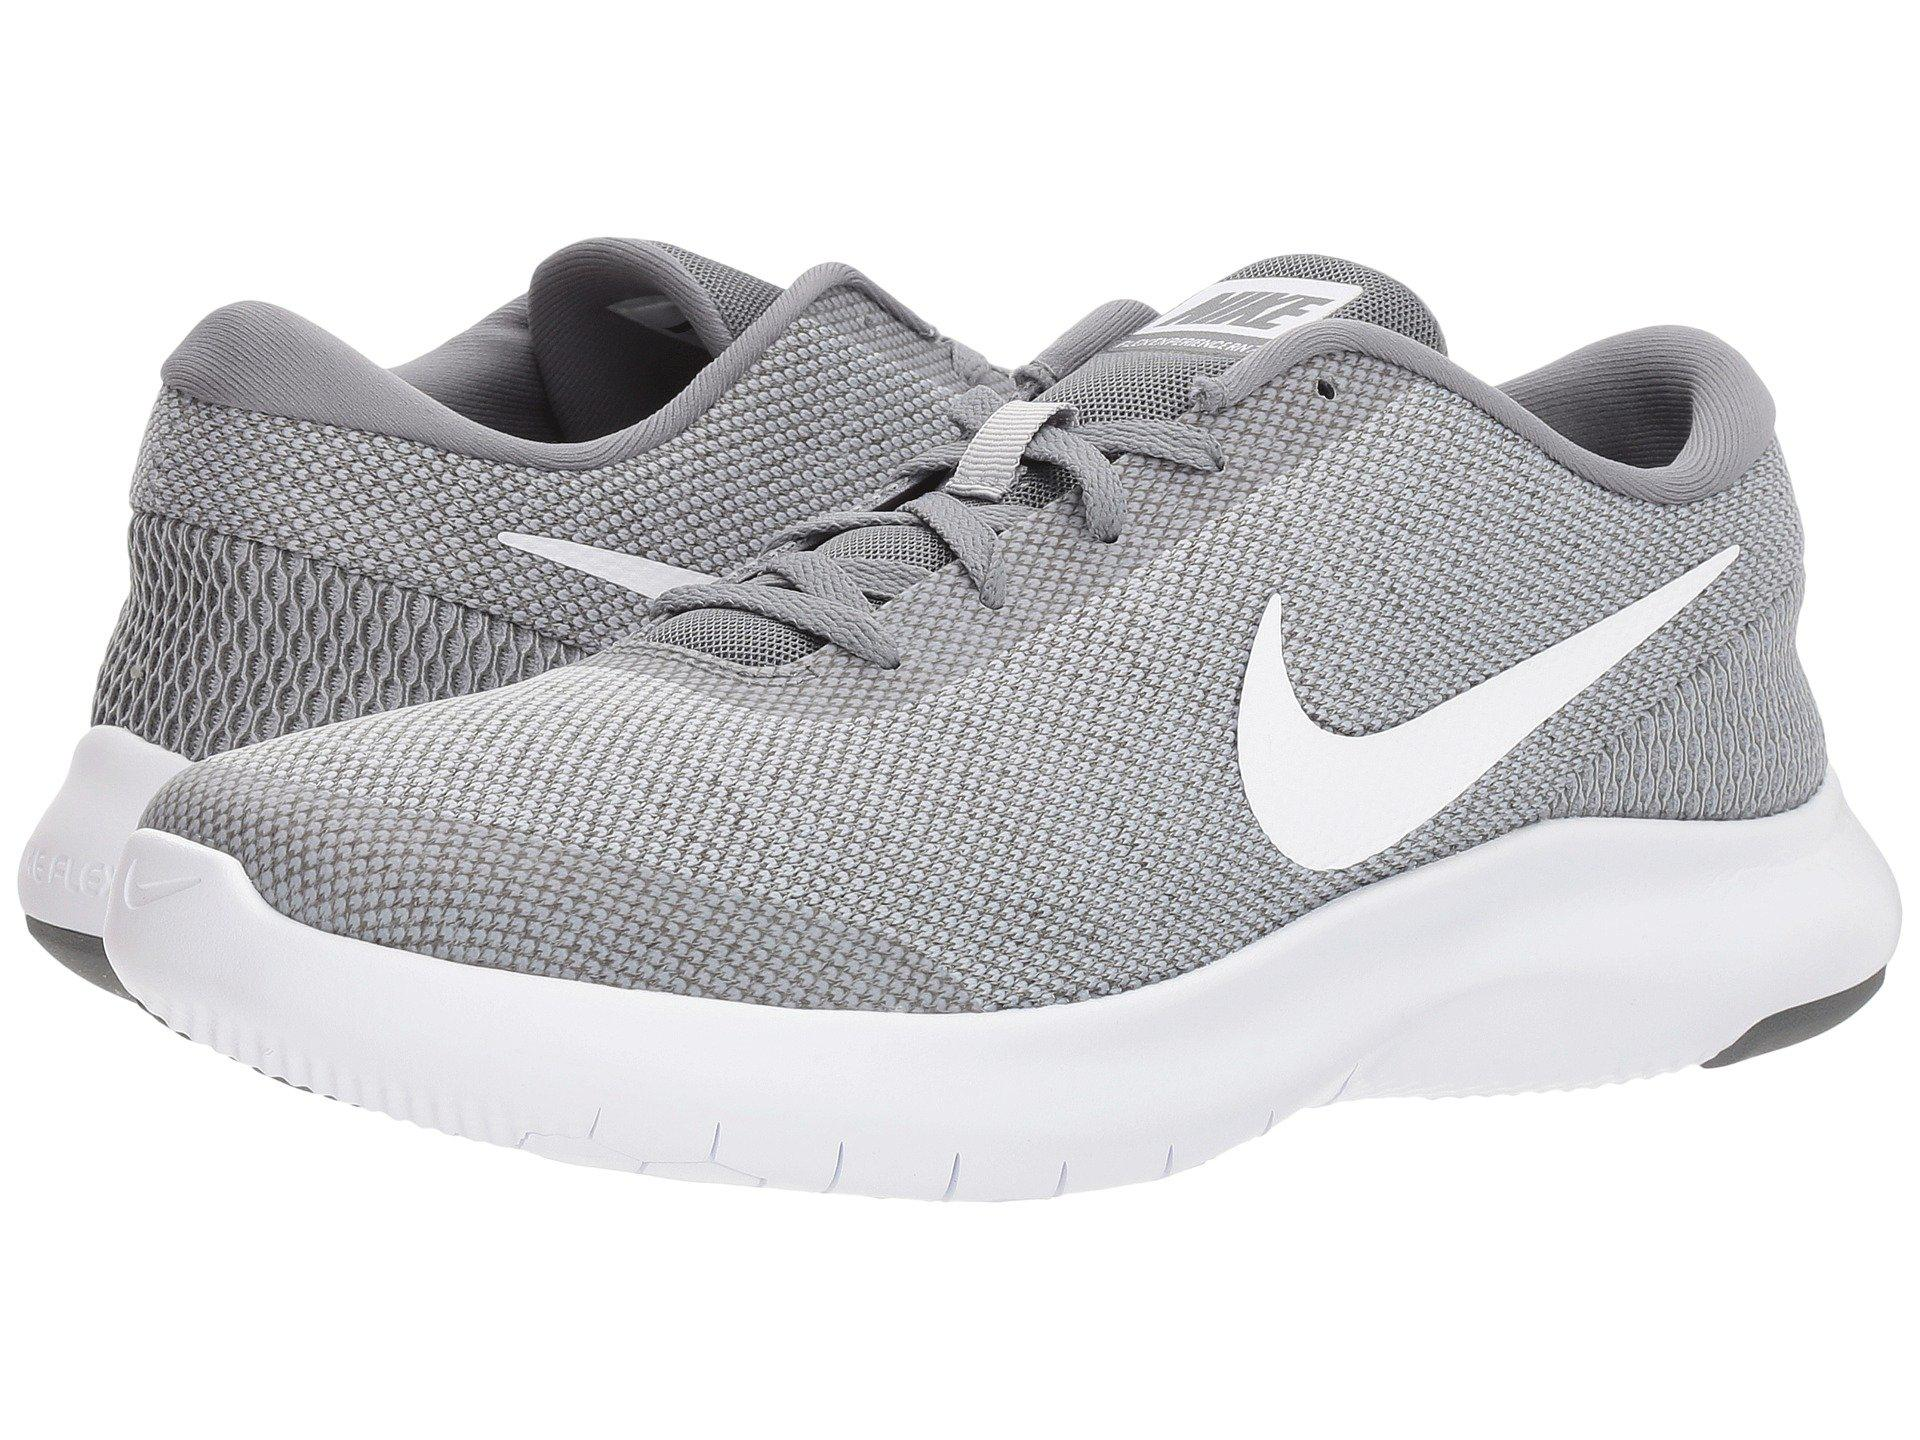 2b6ba2b22b20c Lyst - Nike Flex Experience Rn 7 (football Grey volt white) Men s ...